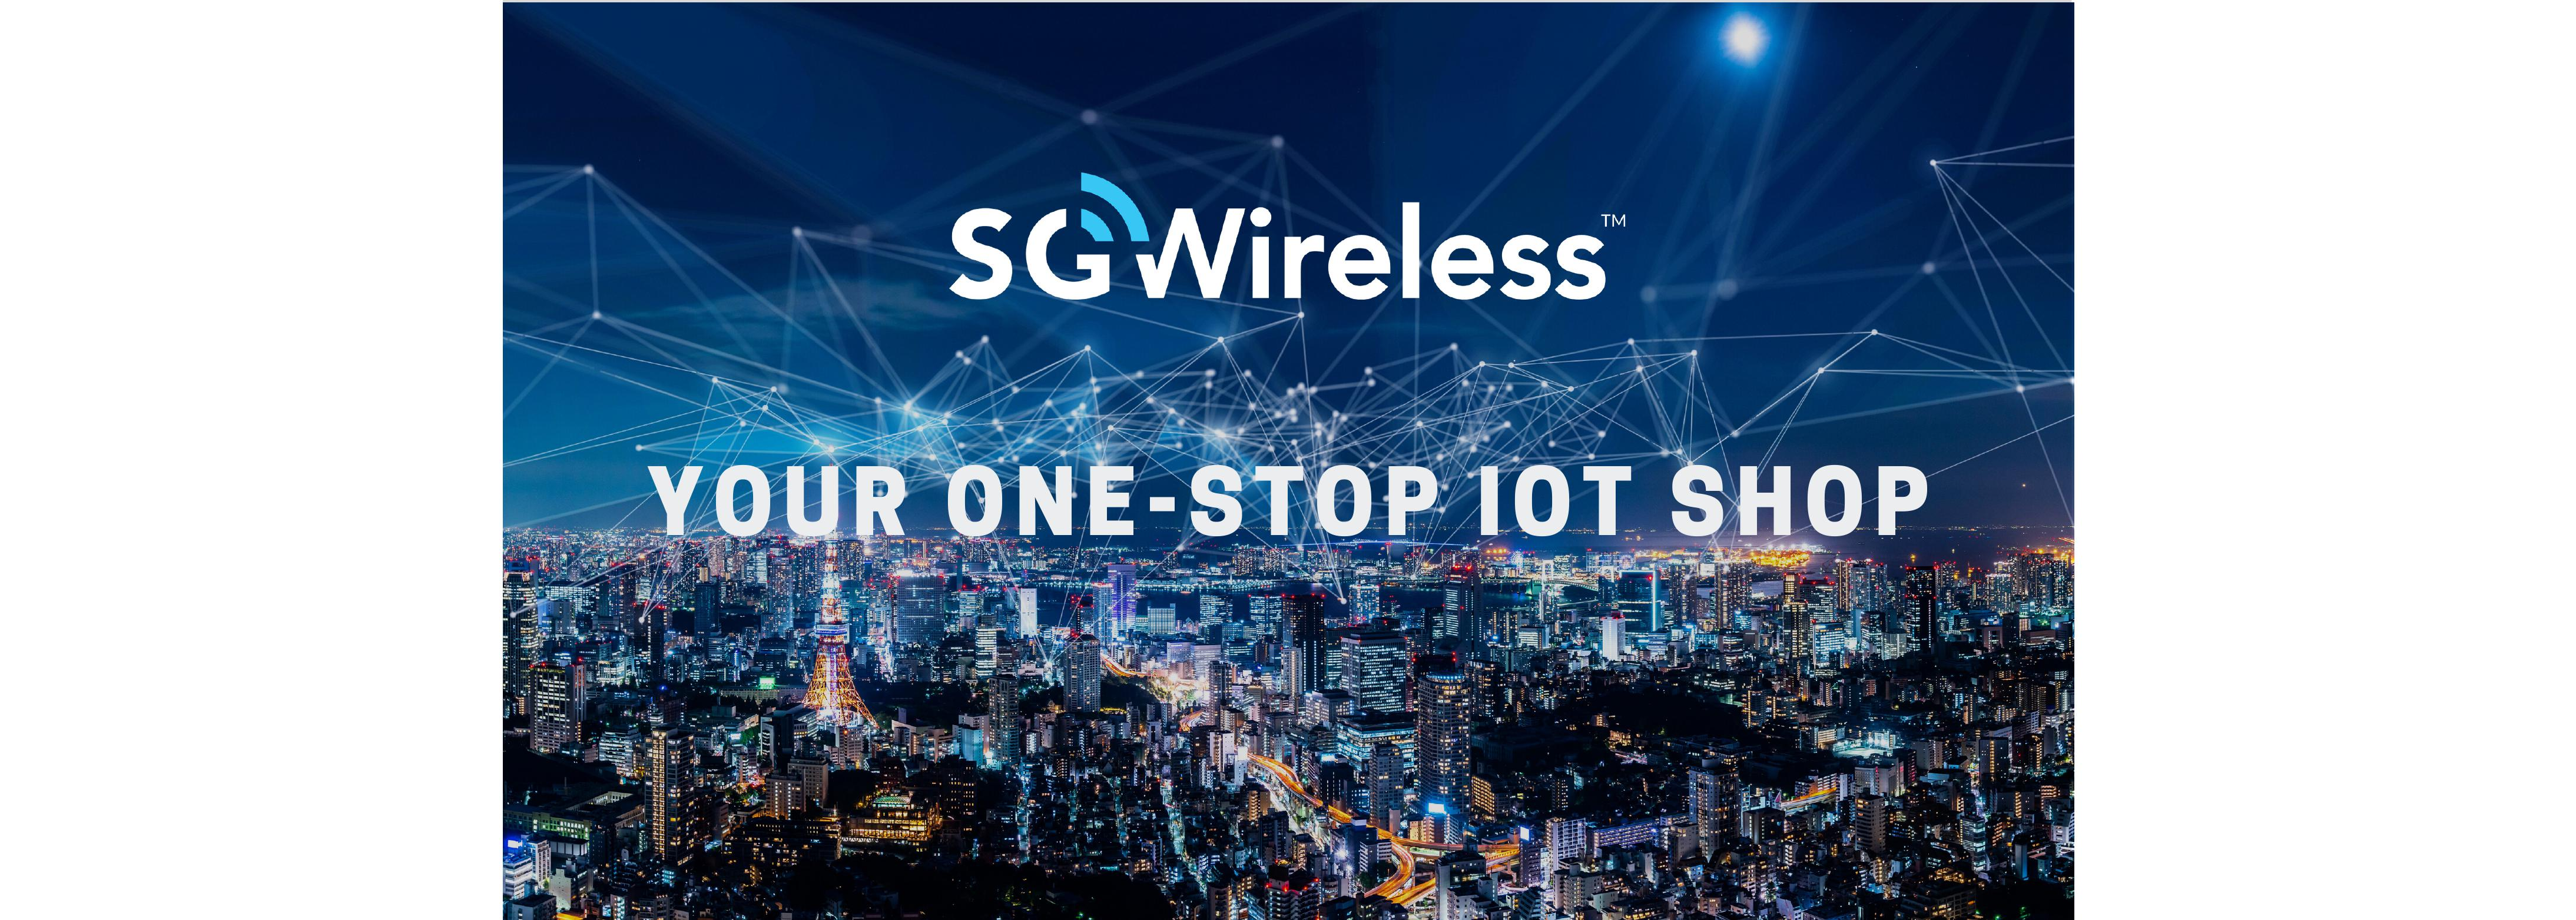 sg wireless sgw one-stop iot shop shop now